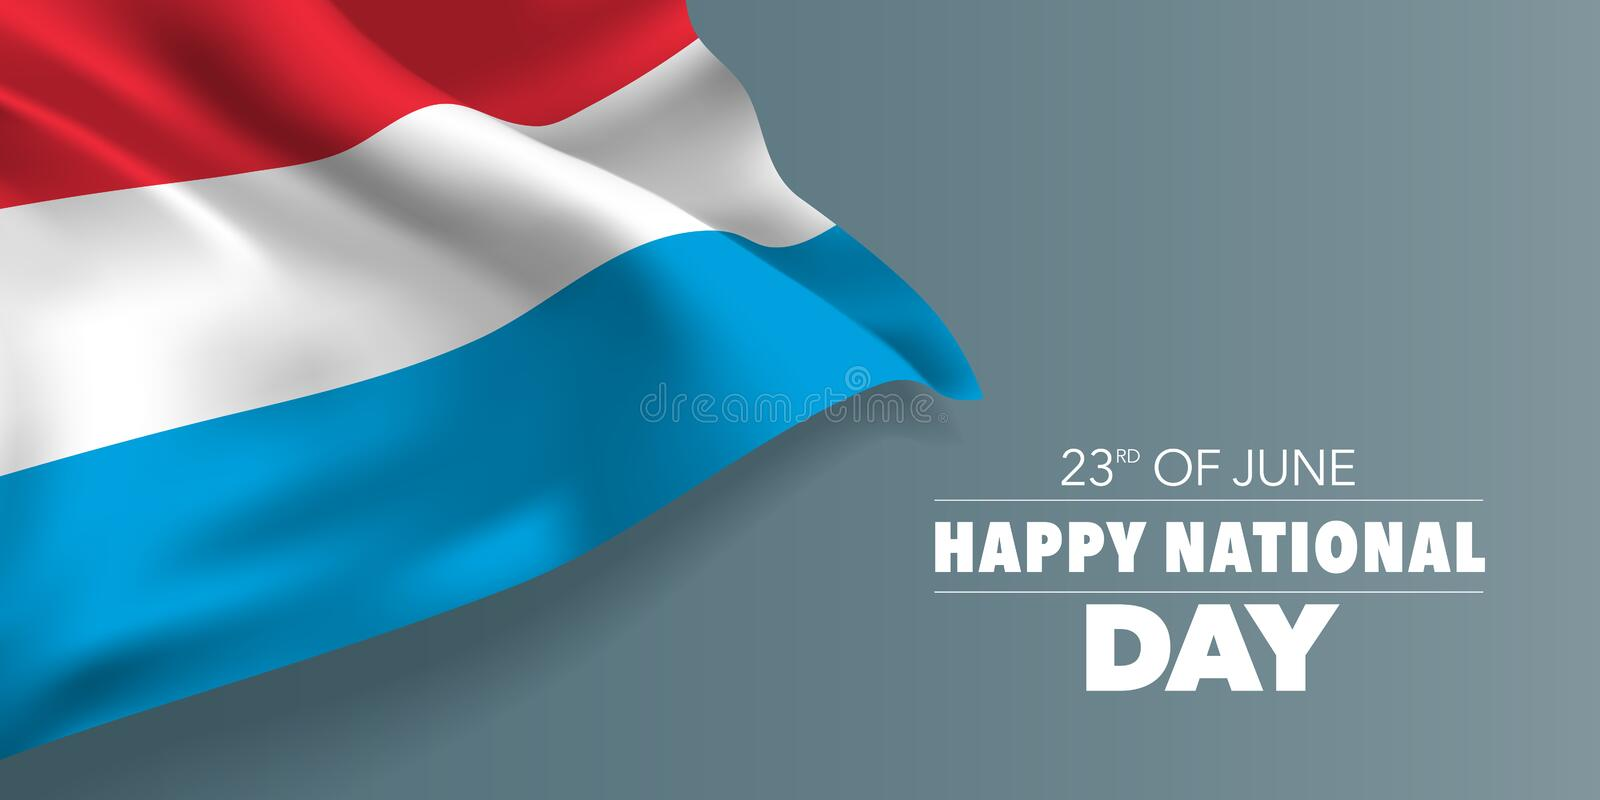 Luxembourg happy national day greeting card, banner with template text vector illustration. Memorial holiday 23rd of June design element with yellow cross stock illustration